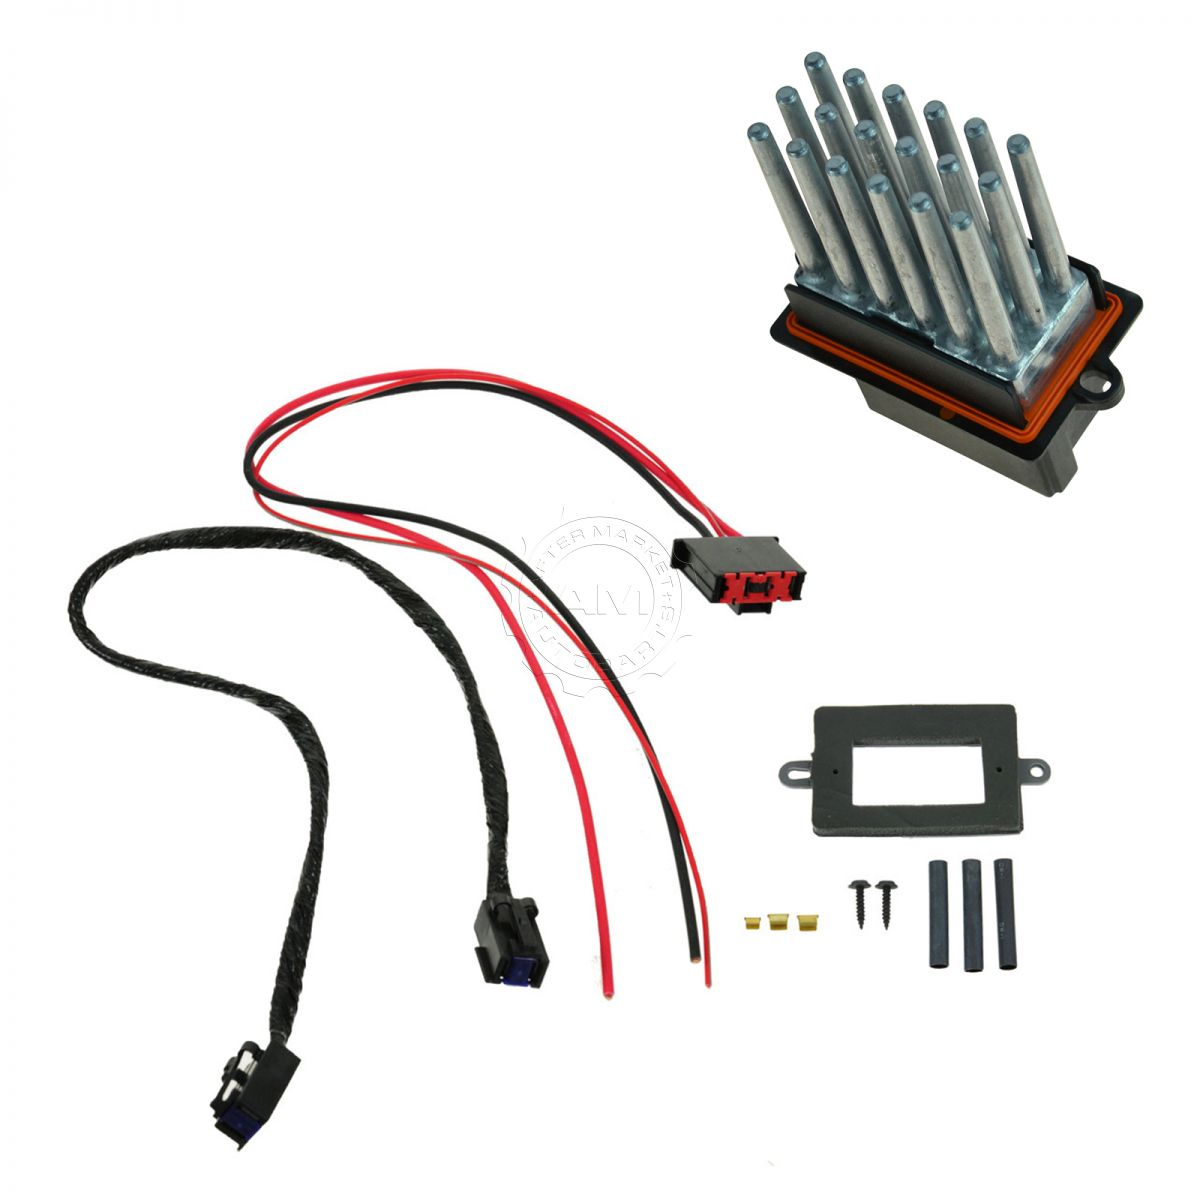 7 wire blower motor resistor harness ford 800 12 volt conversion wiring diagram oem upgrade kit for